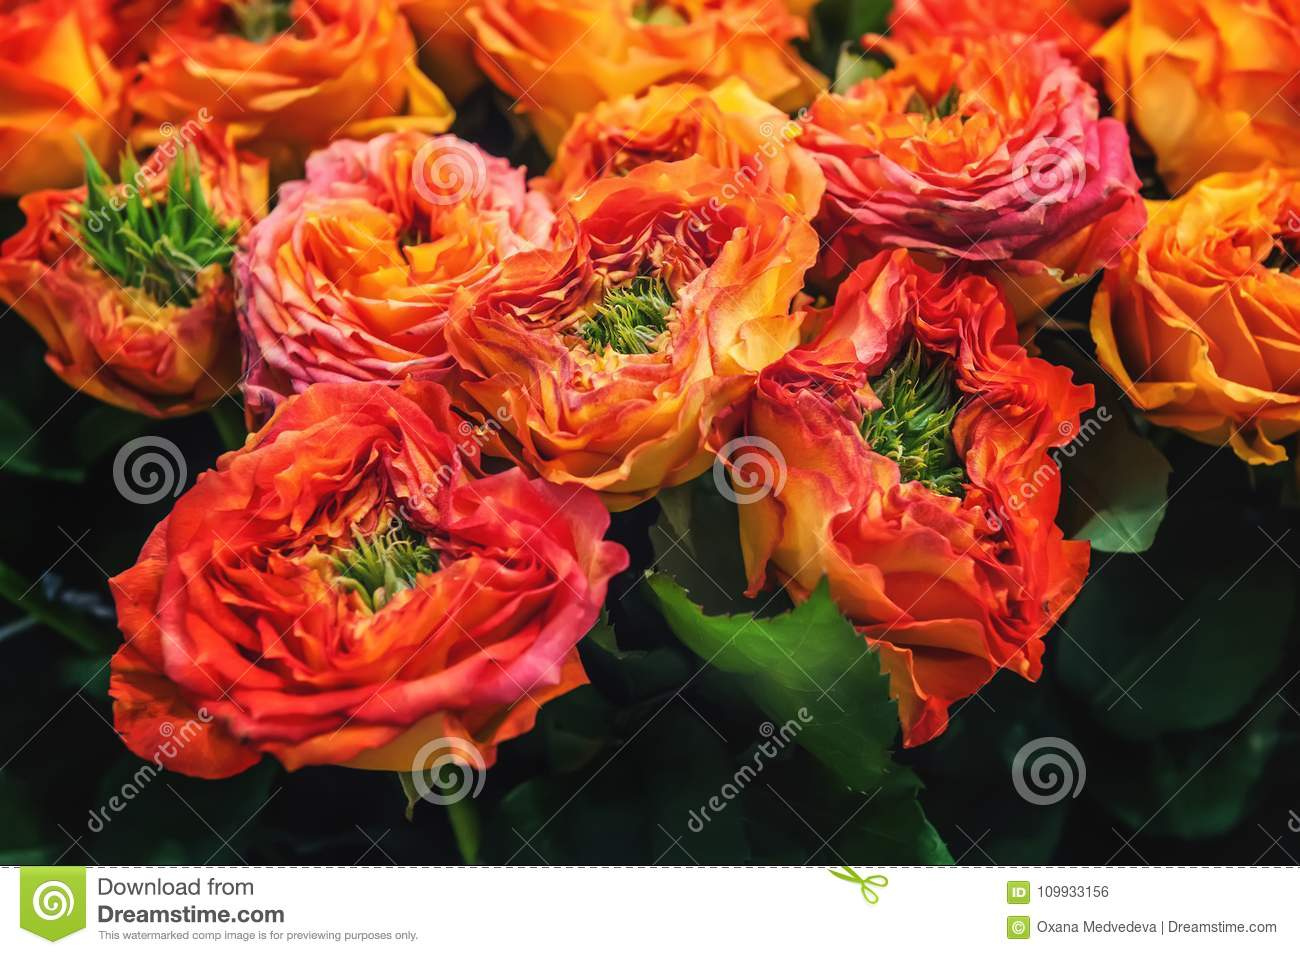 Red Roses With Green Middle Of The Original Selection Of A Large